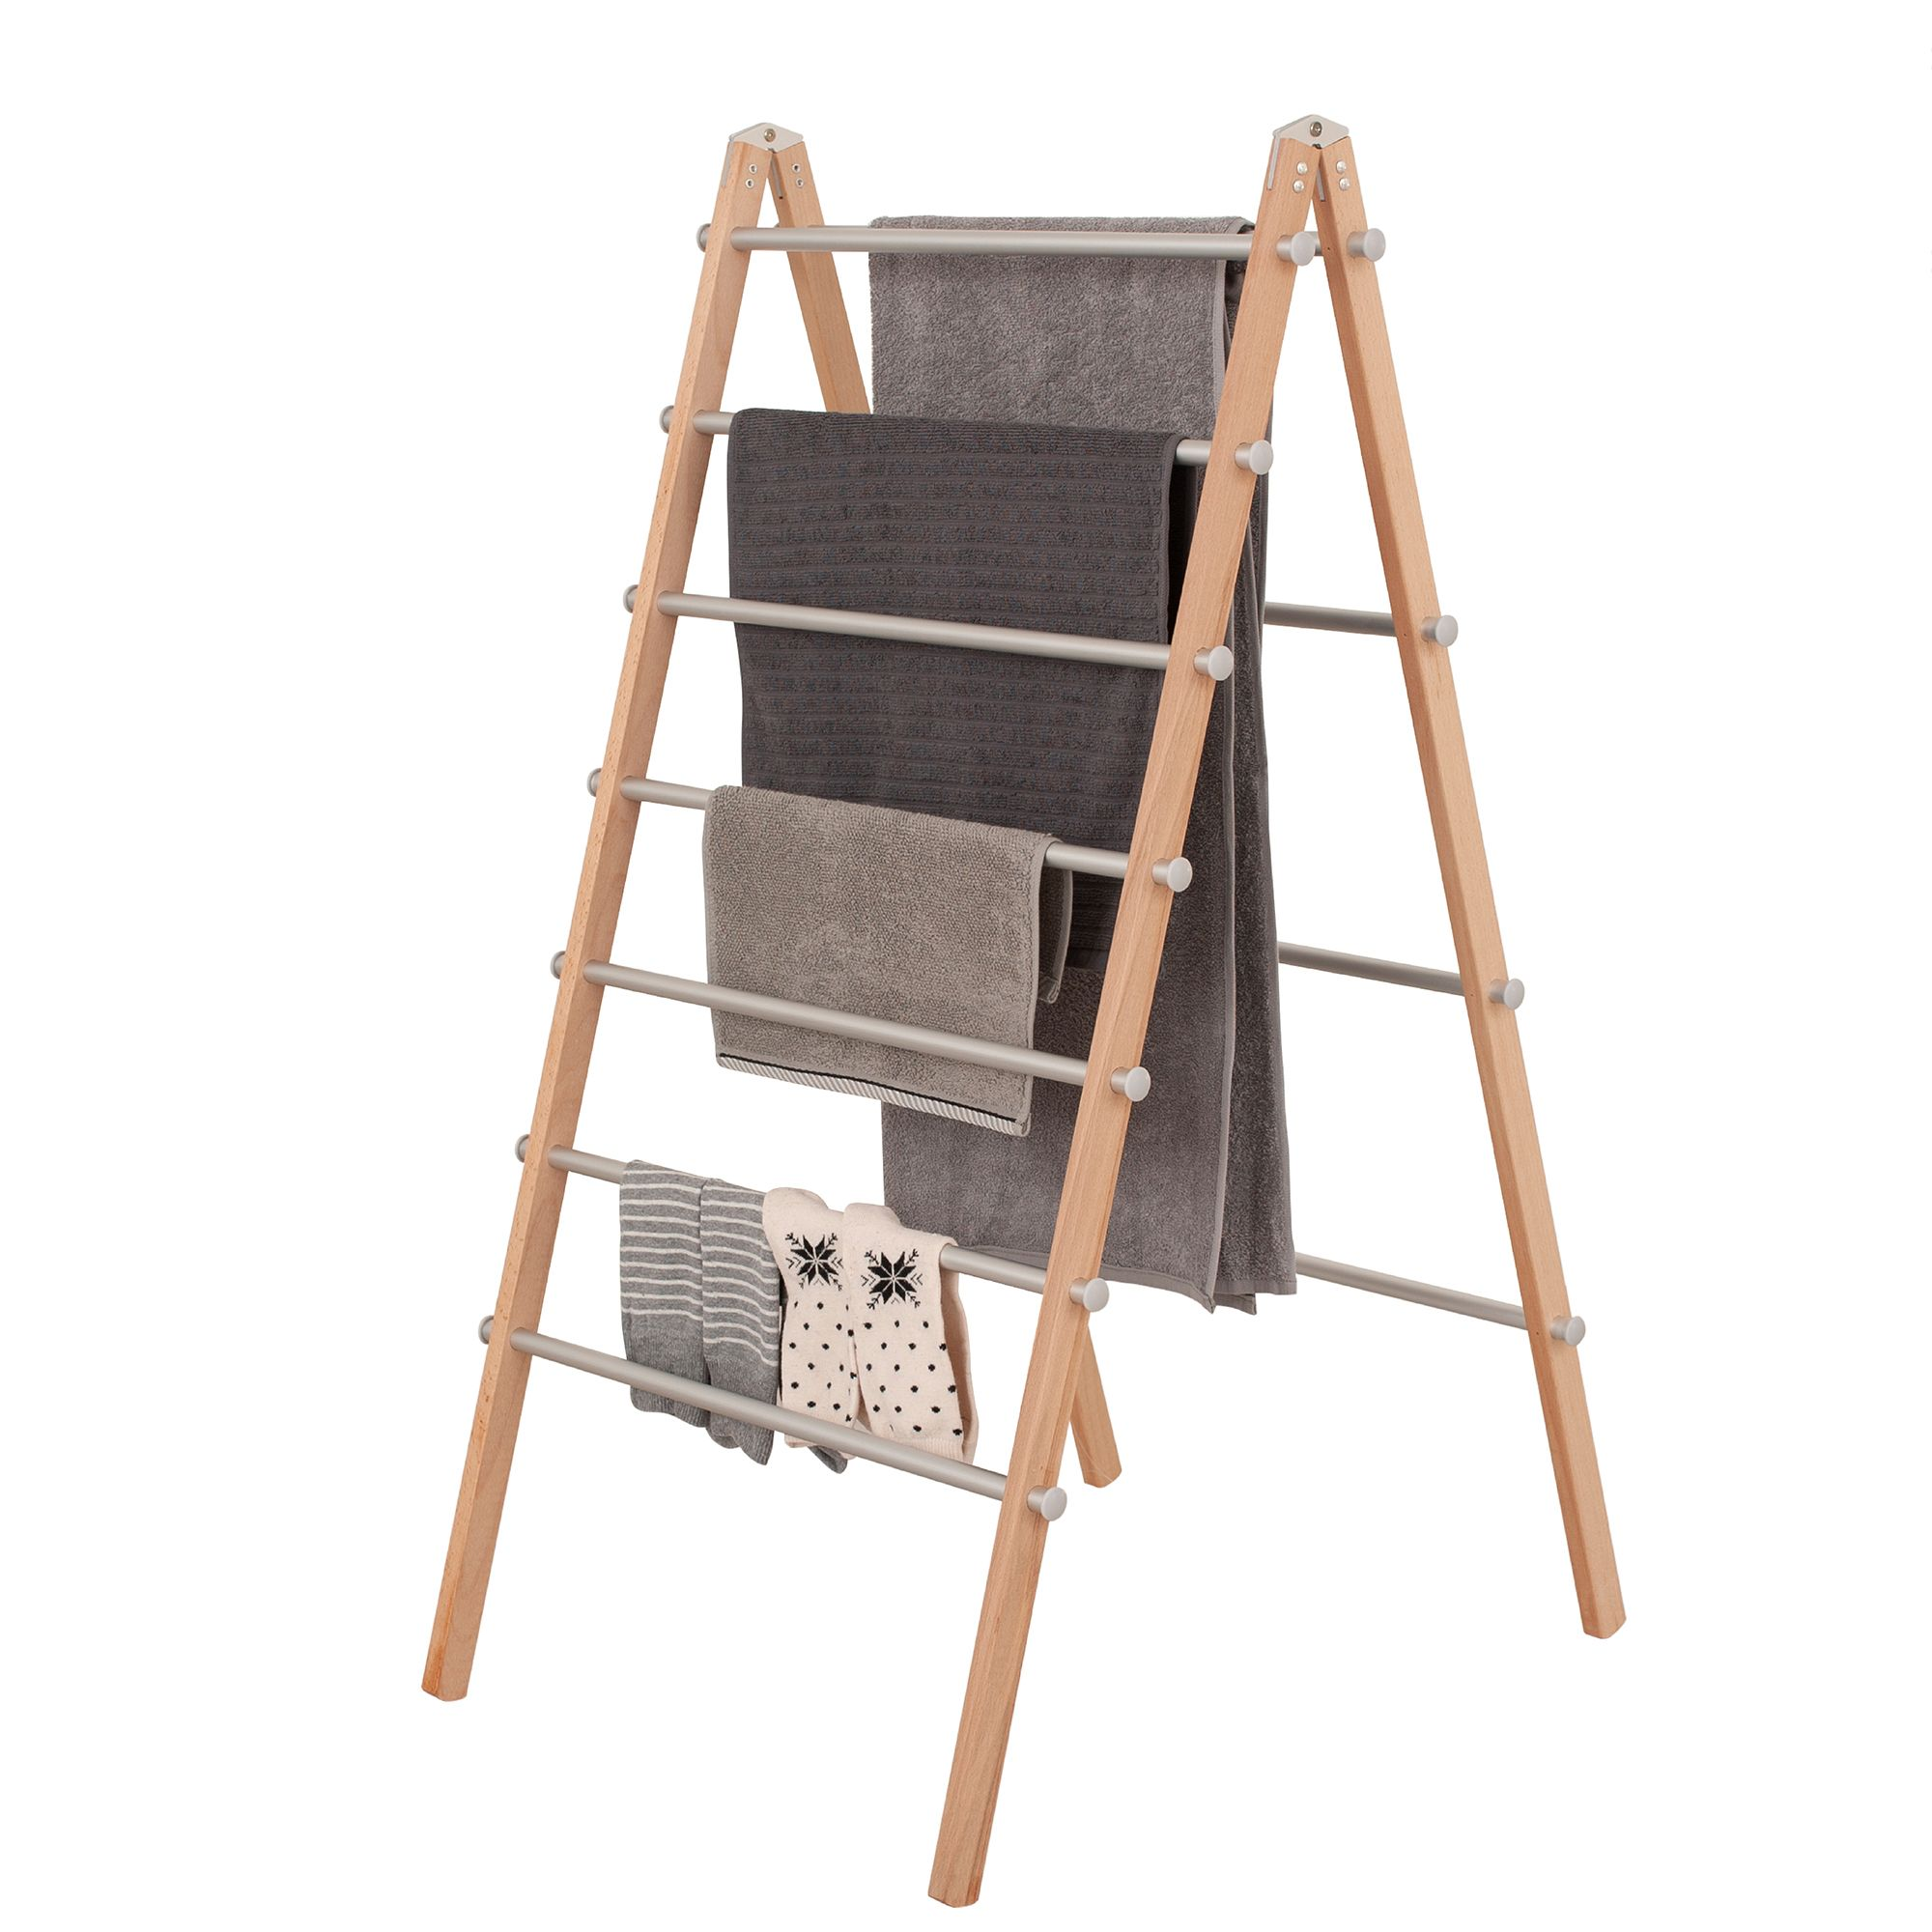 innoka wooden aluminum folding laundry ladder clothes drying rack clothes dryer storage for indoor outdoor home essentials in smart adjustable